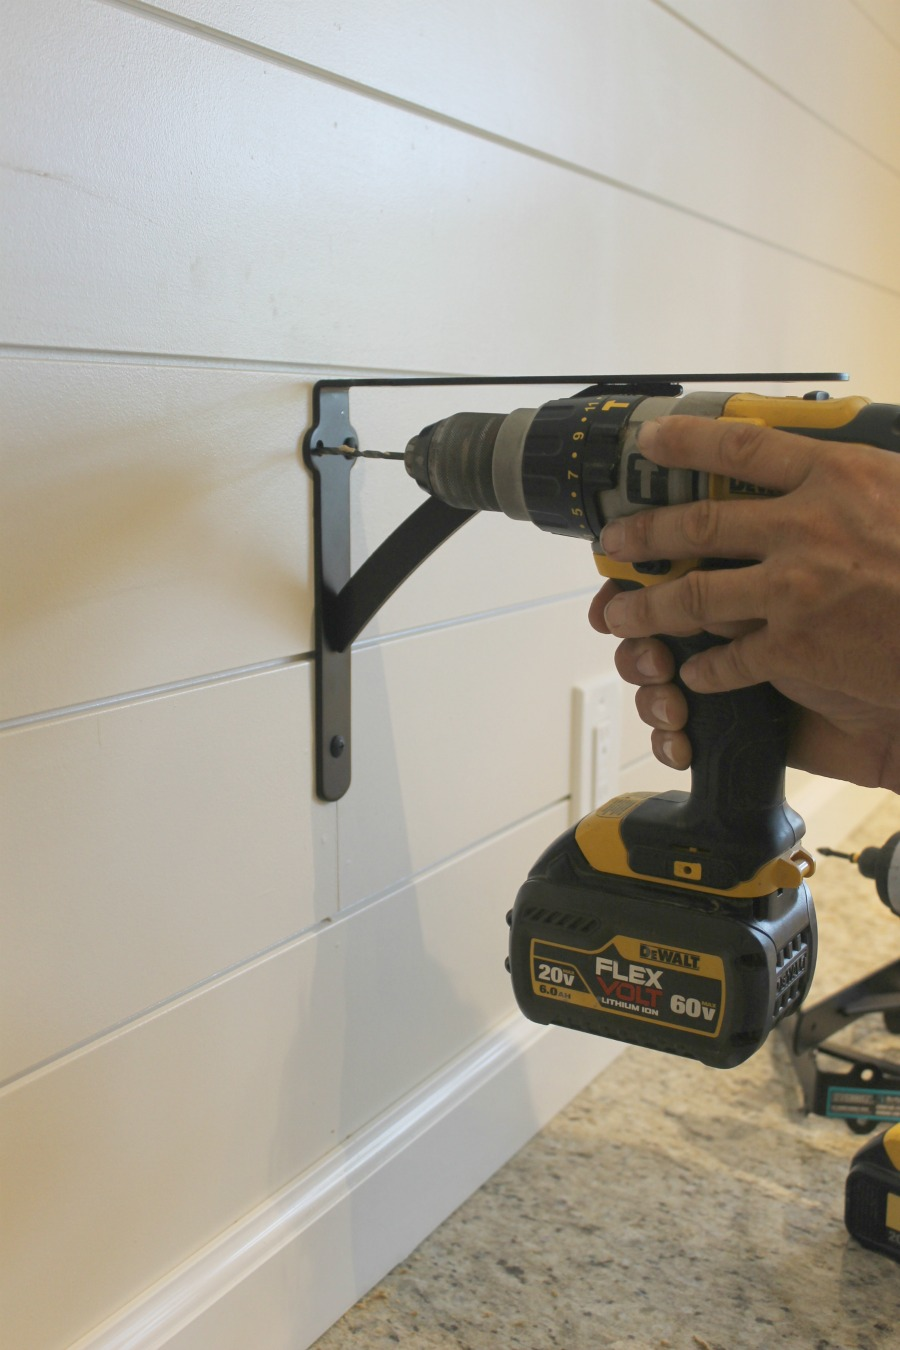 How to build DIY kitchen shelves - drill the brackets into the wall